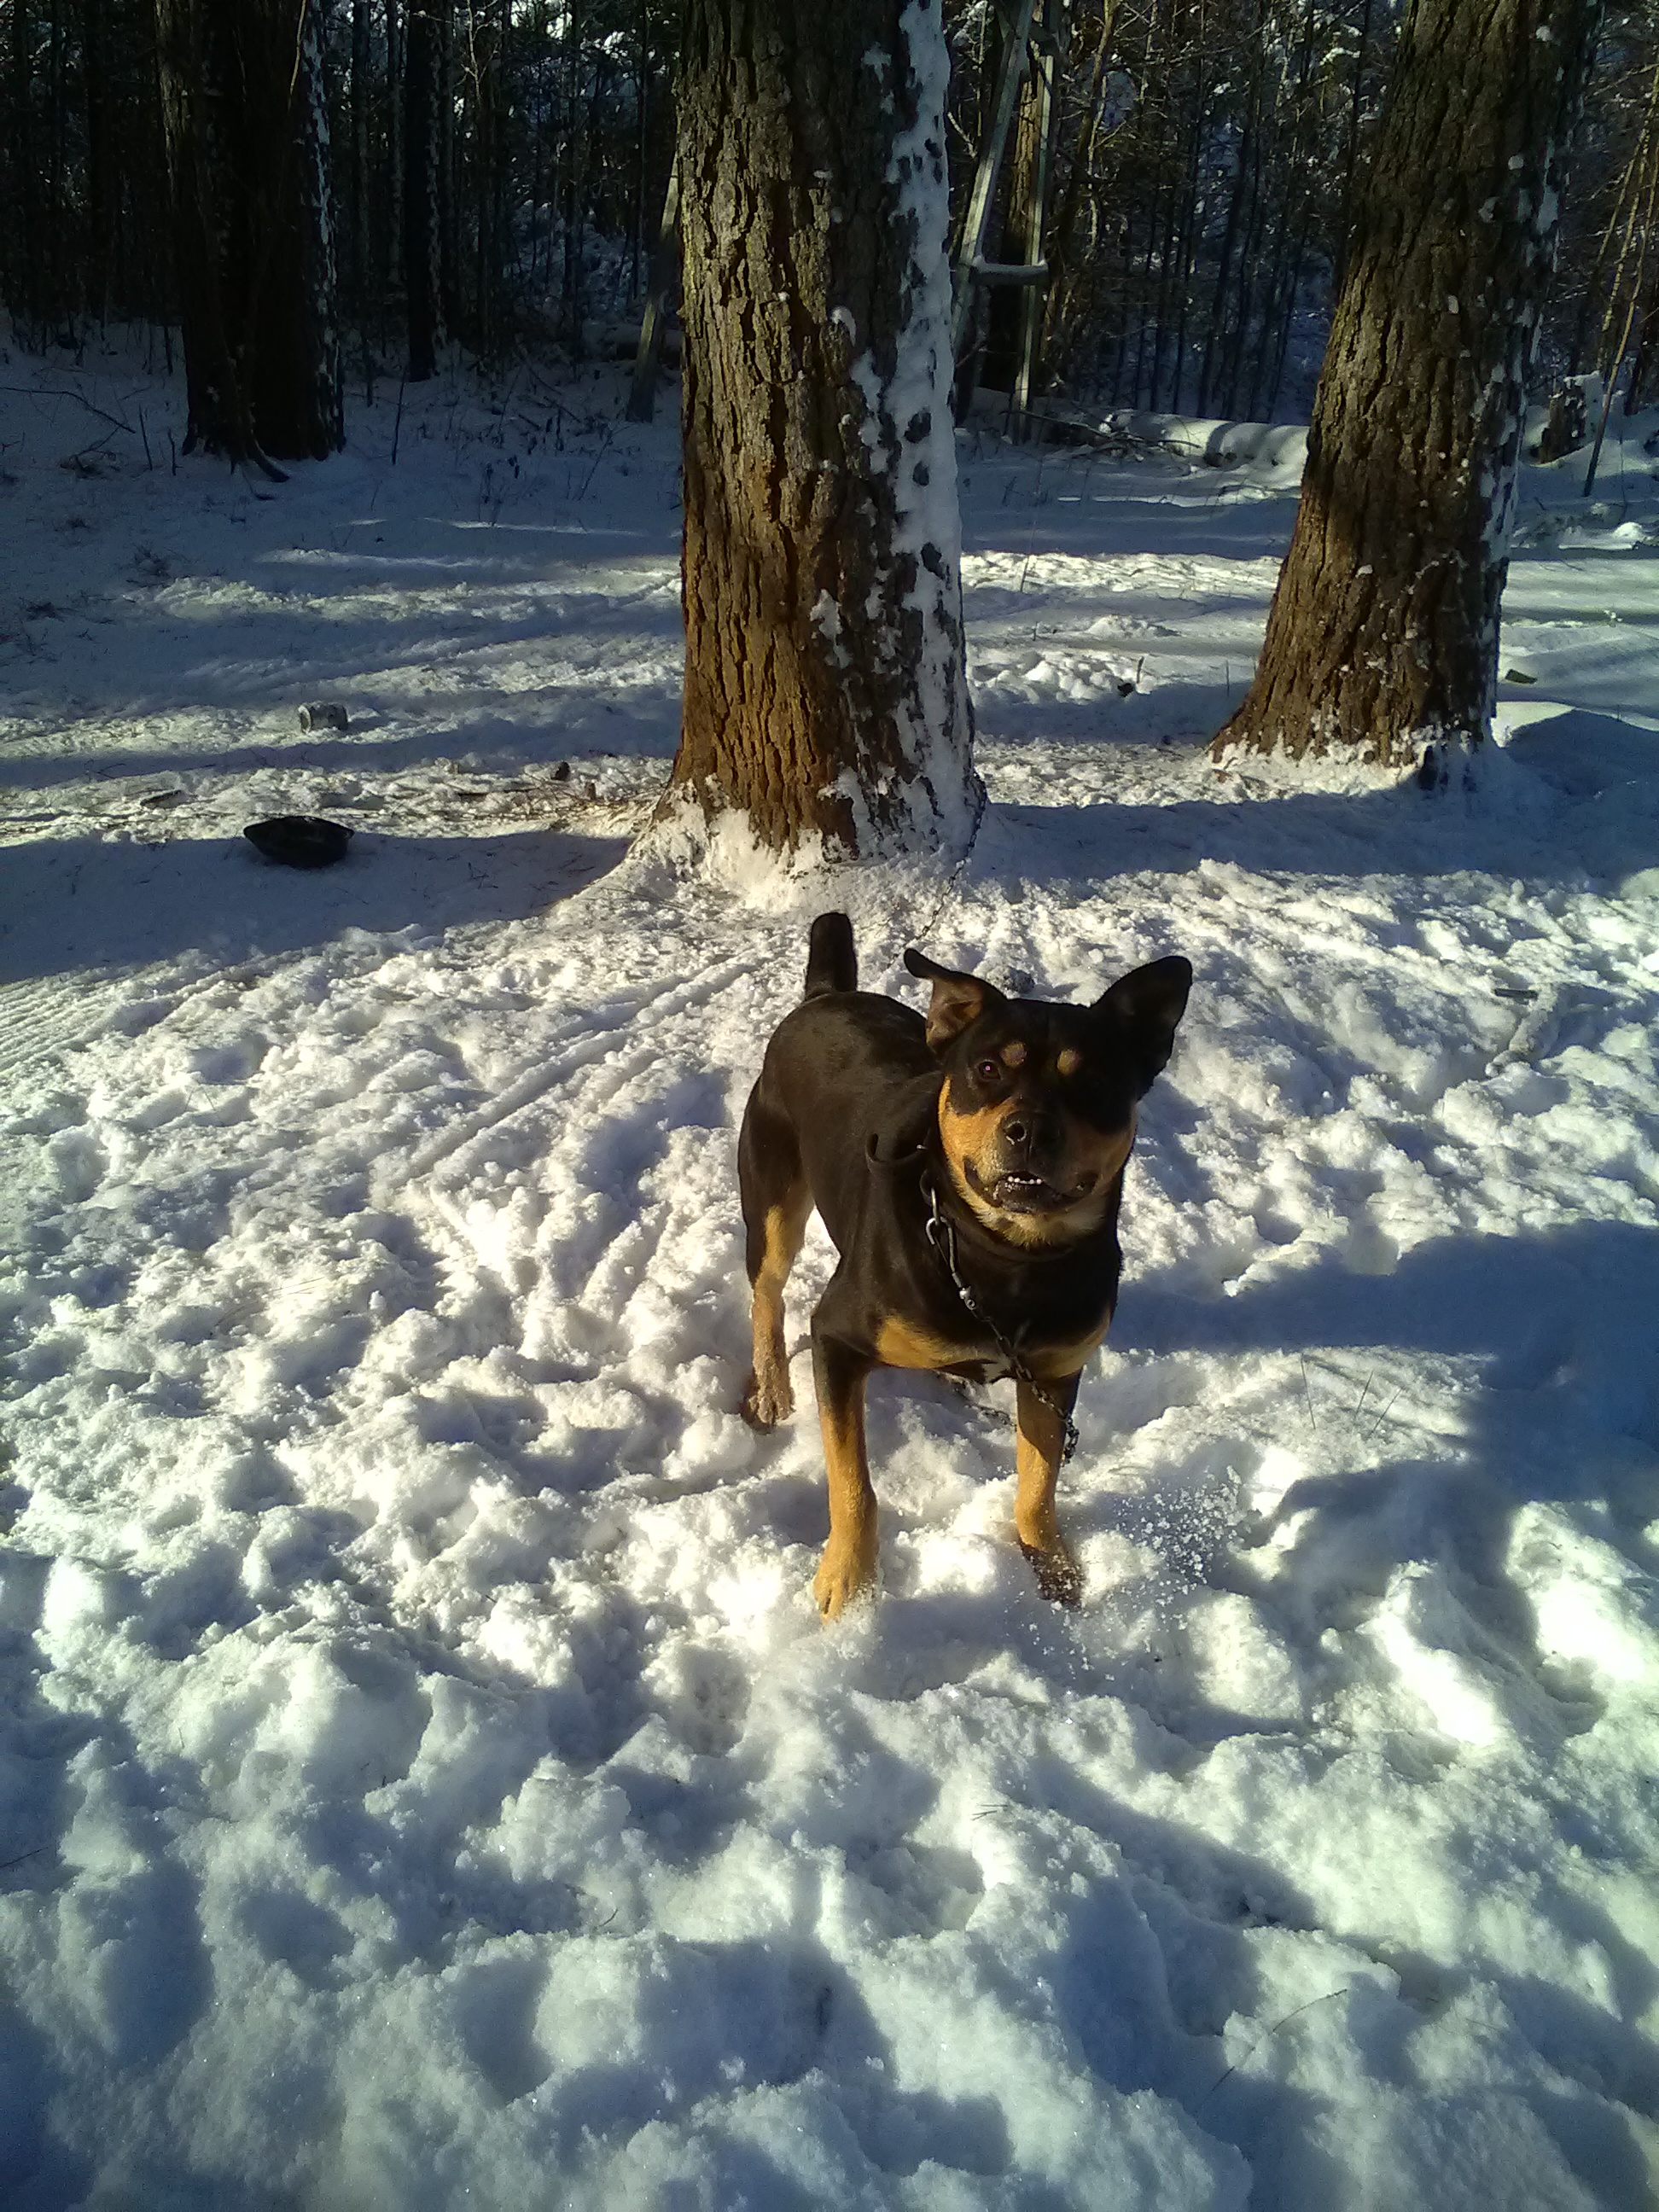 "<div class=""meta image-caption""><div class=""origin-logo origin-image wtvd""><span>WTVD</span></div><span class=""caption-text"">Sam Dalton posing for his owner in the snow. (Helena Williams - ABC11 Eyewitness)</span></div>"